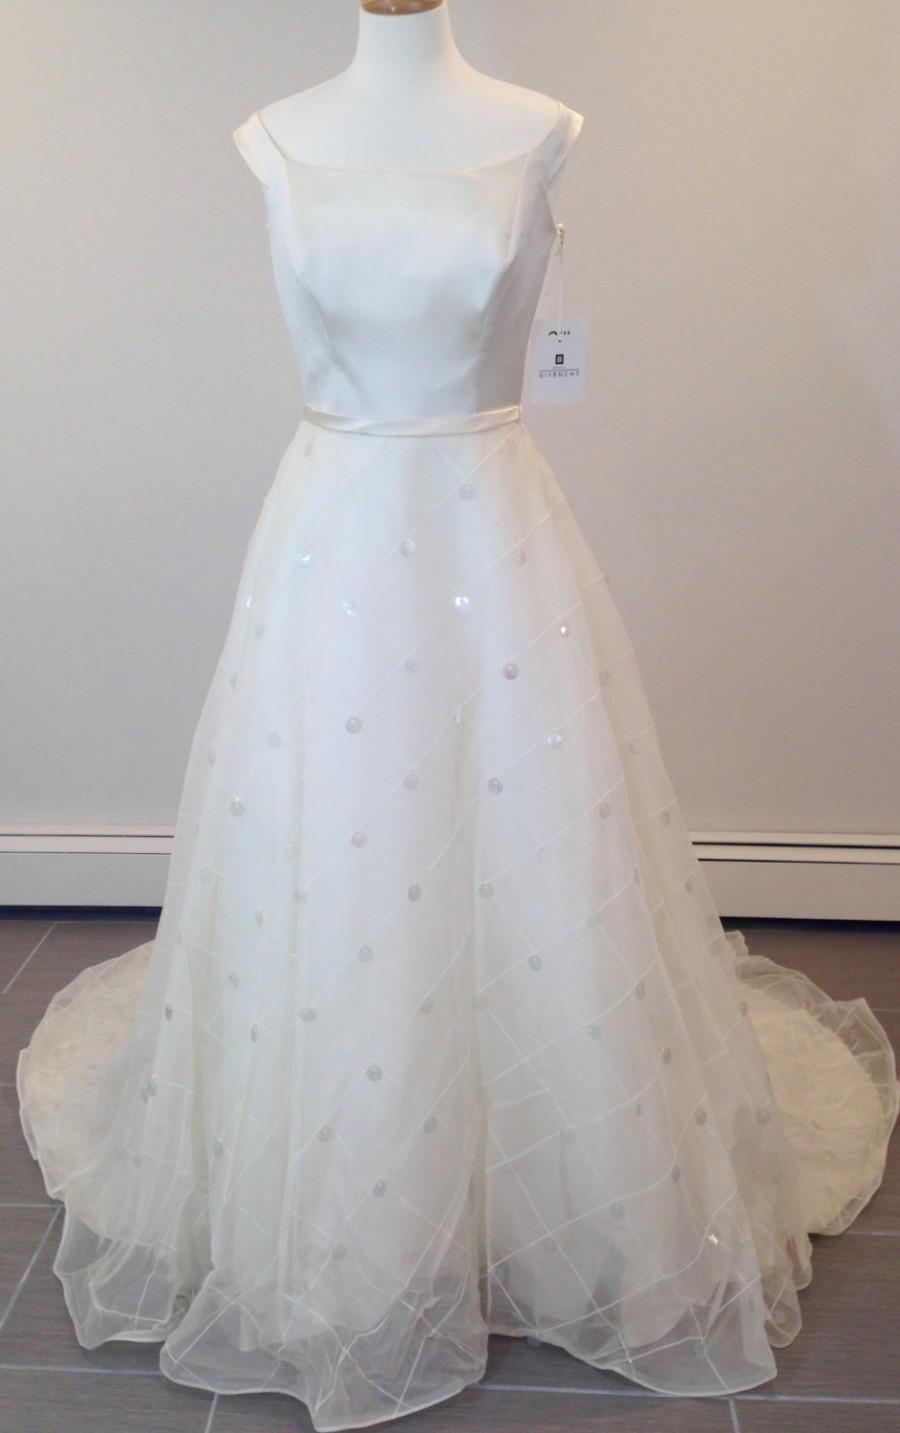 This Is A Beautiful Givenchy Wedding Dress Size 8 #2709810 - Weddbook